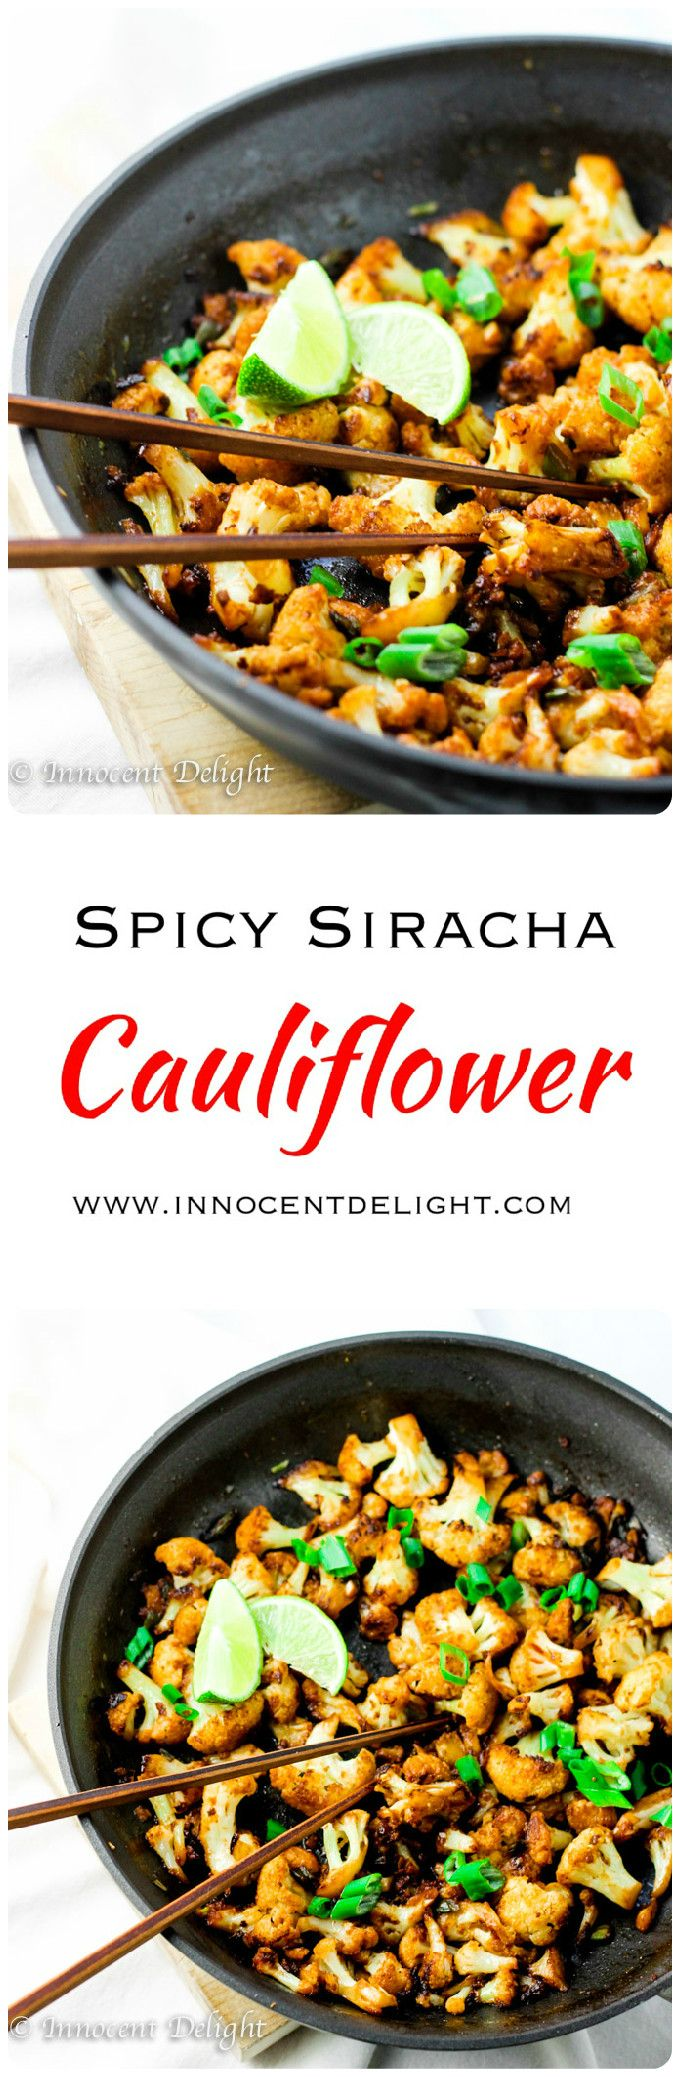 Spicy Siracha Cauliflower - mind blowing combination. And it only takes 15 minutes from start to finish. How easy is that?